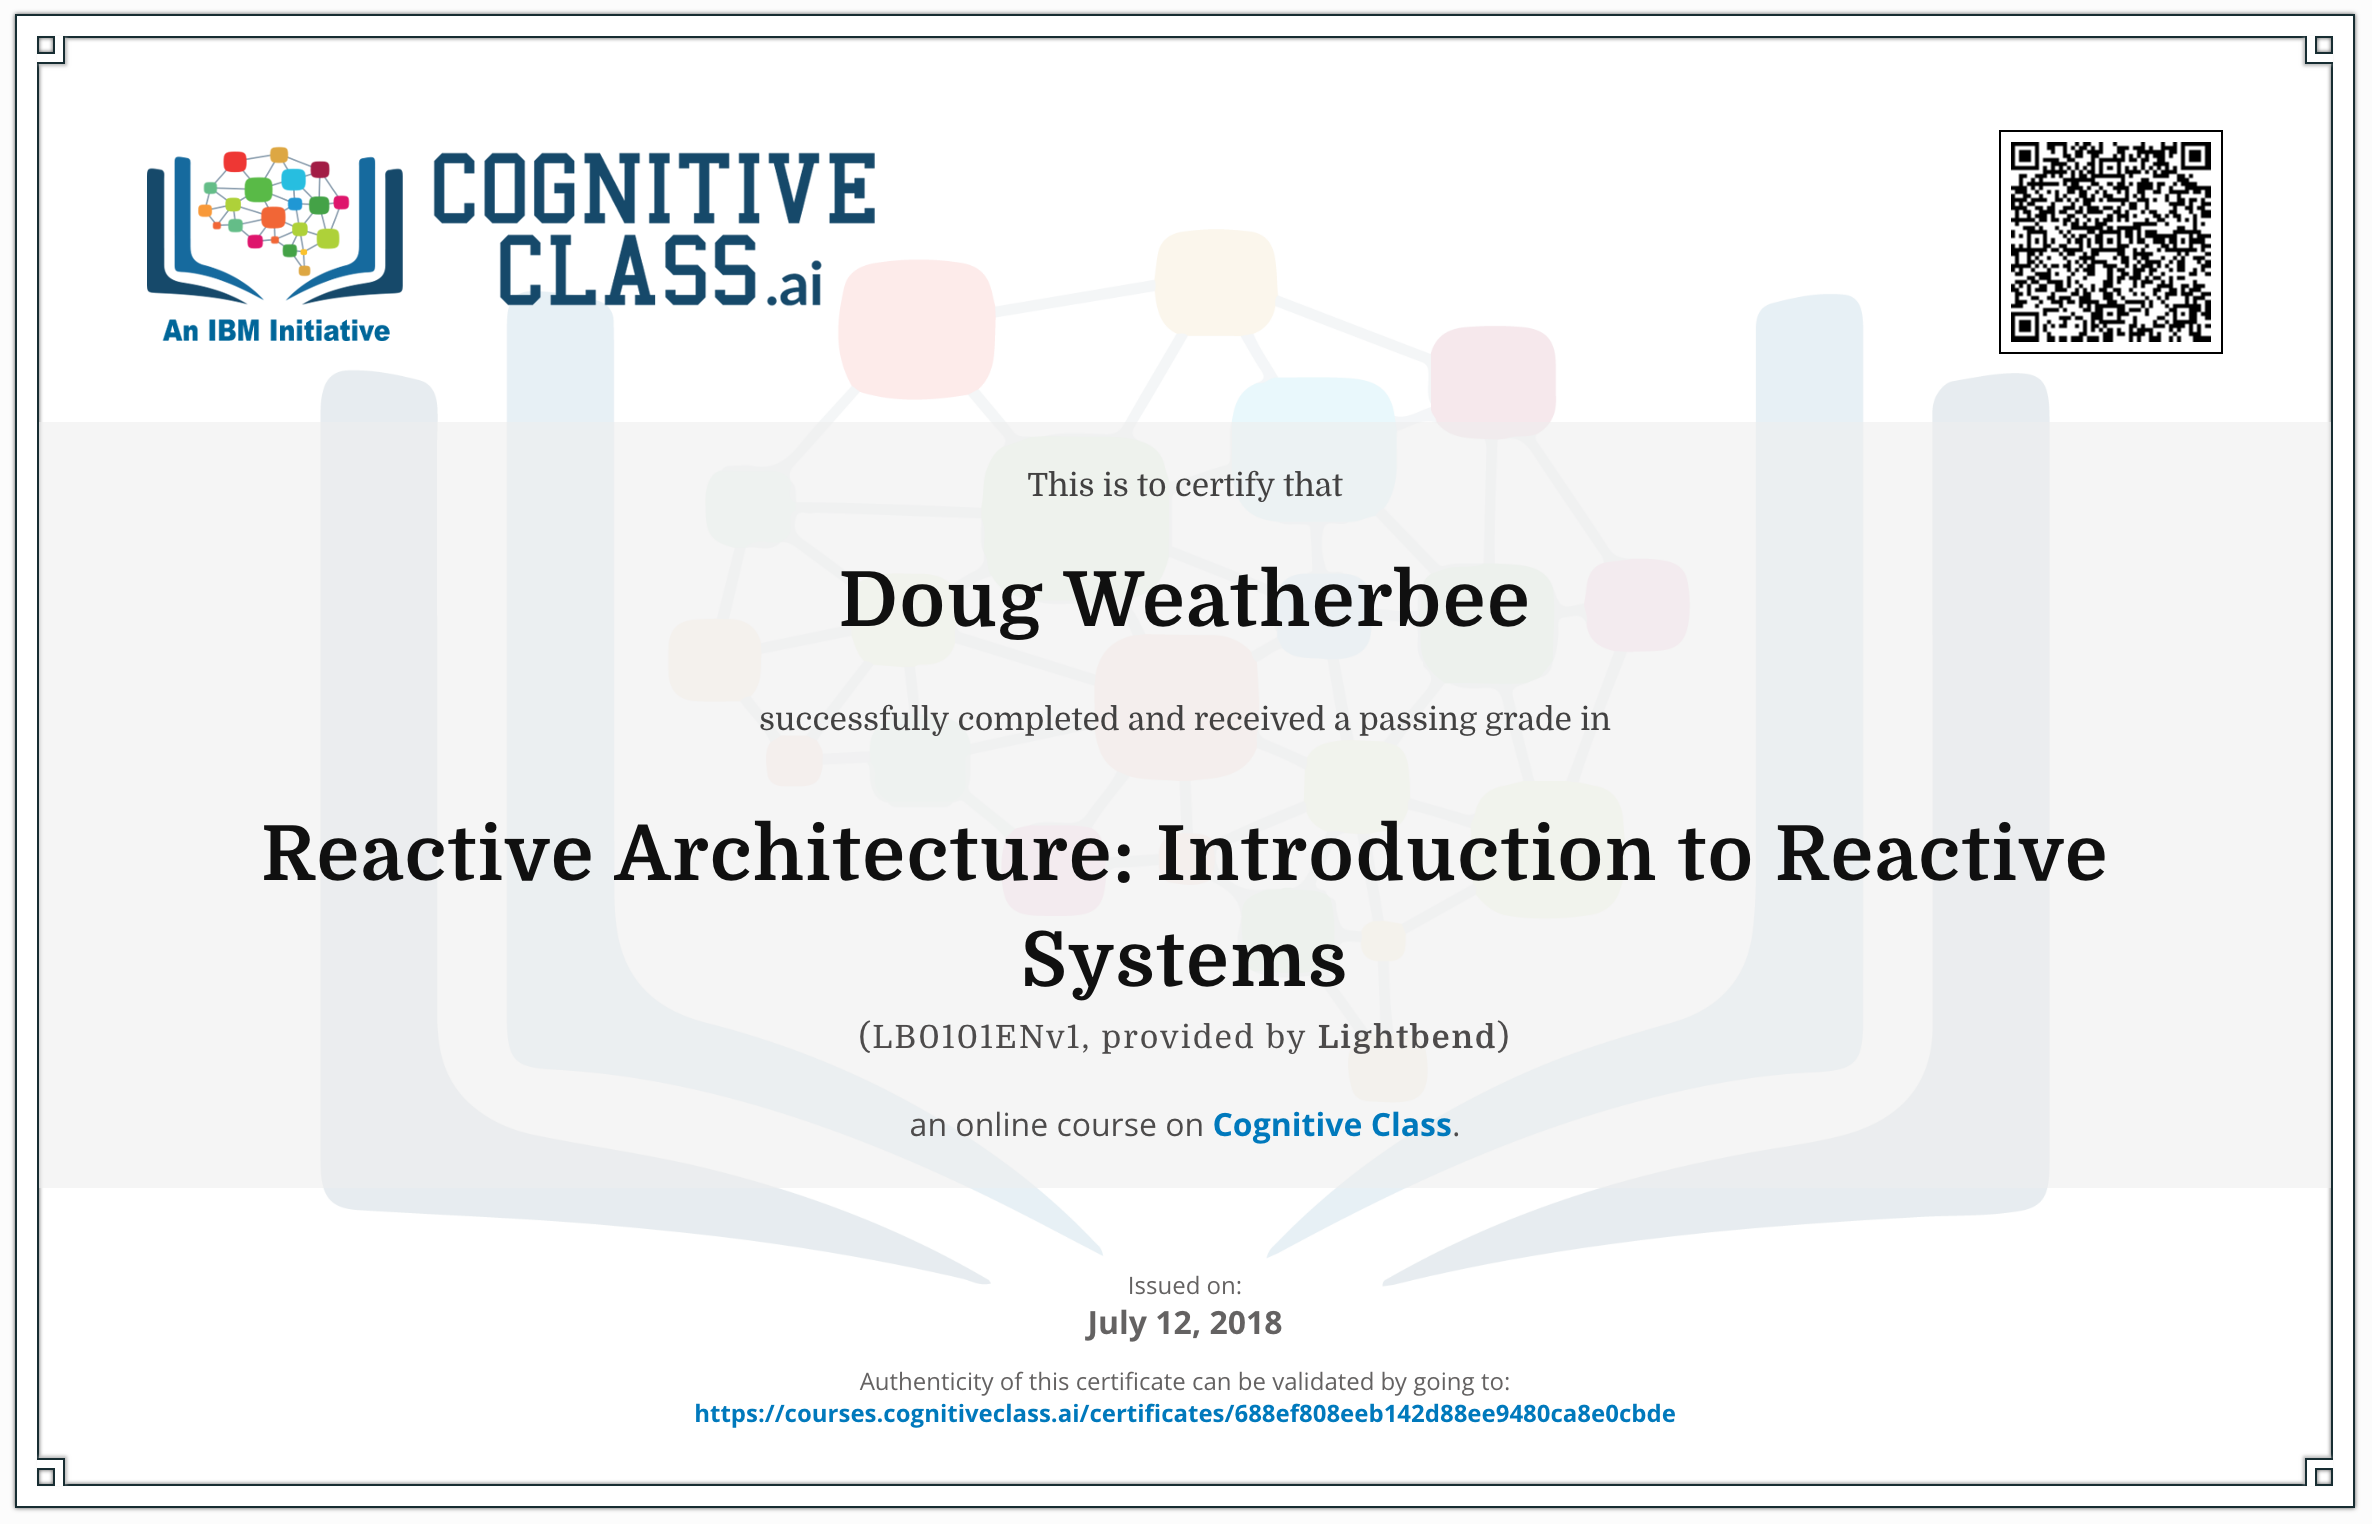 Learn Reactive Architecture For Free, At Your Own Pace | @lightbend